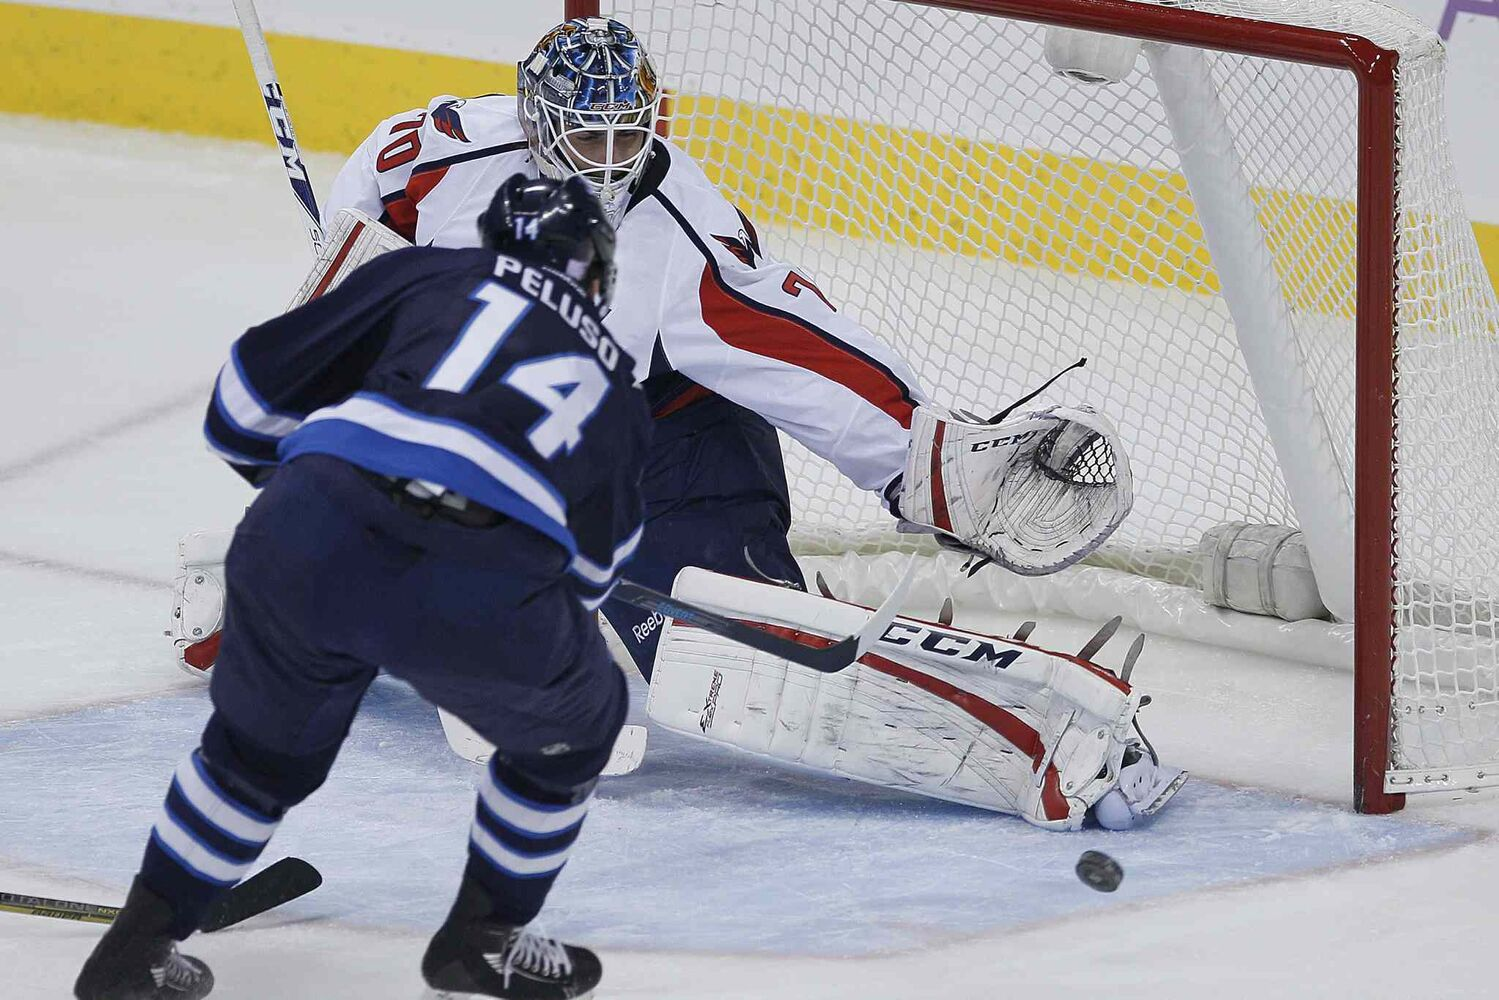 Winnipeg Jets forward Anthony Peluso misses this opportunity to score on Washington Capitals goaltender Braden Holtby during the first period. (JOHN WOODS / WINNIPEG FREE PRESS)